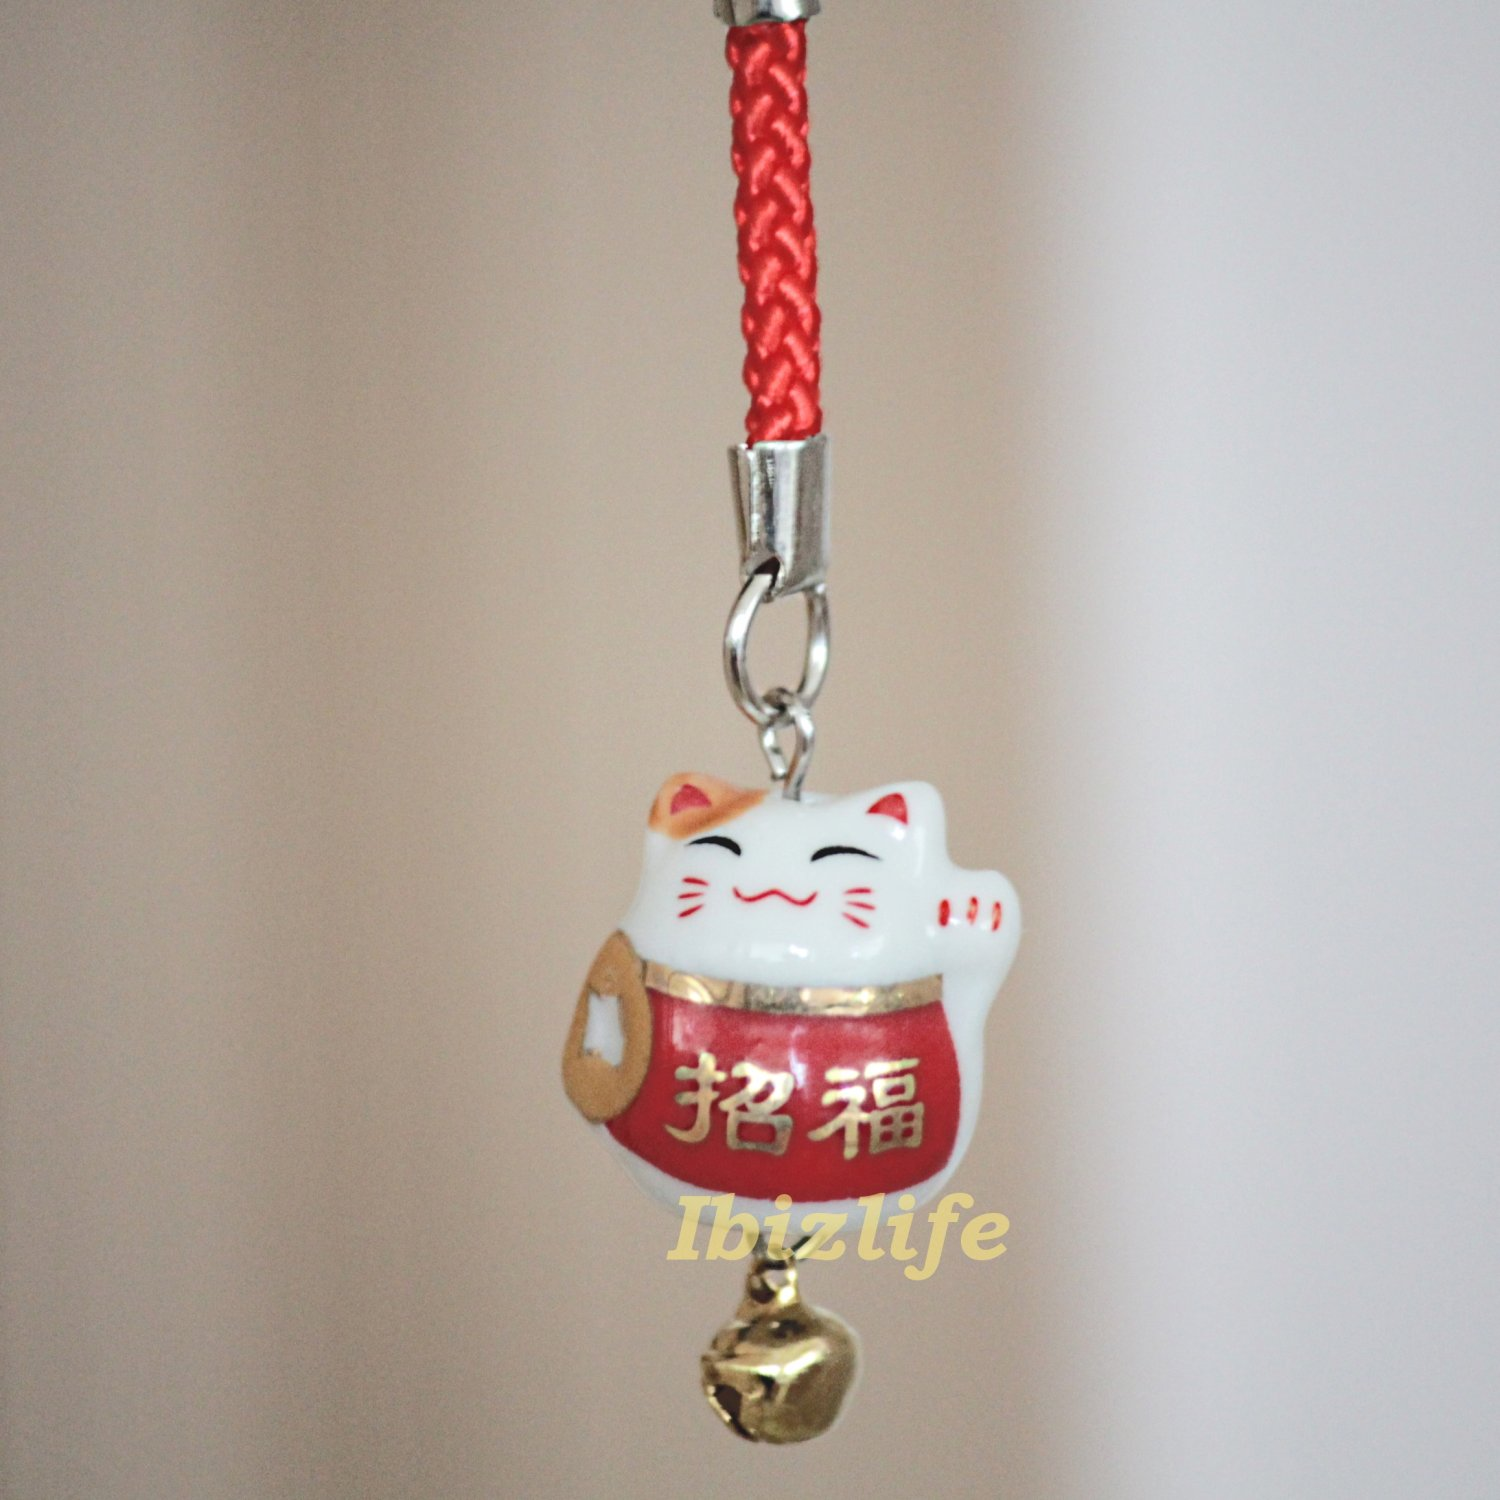 Blessing Lucky BELL CHARM- (Maneki Neko) with Chinese Blessing words LUCKY (bbc05)